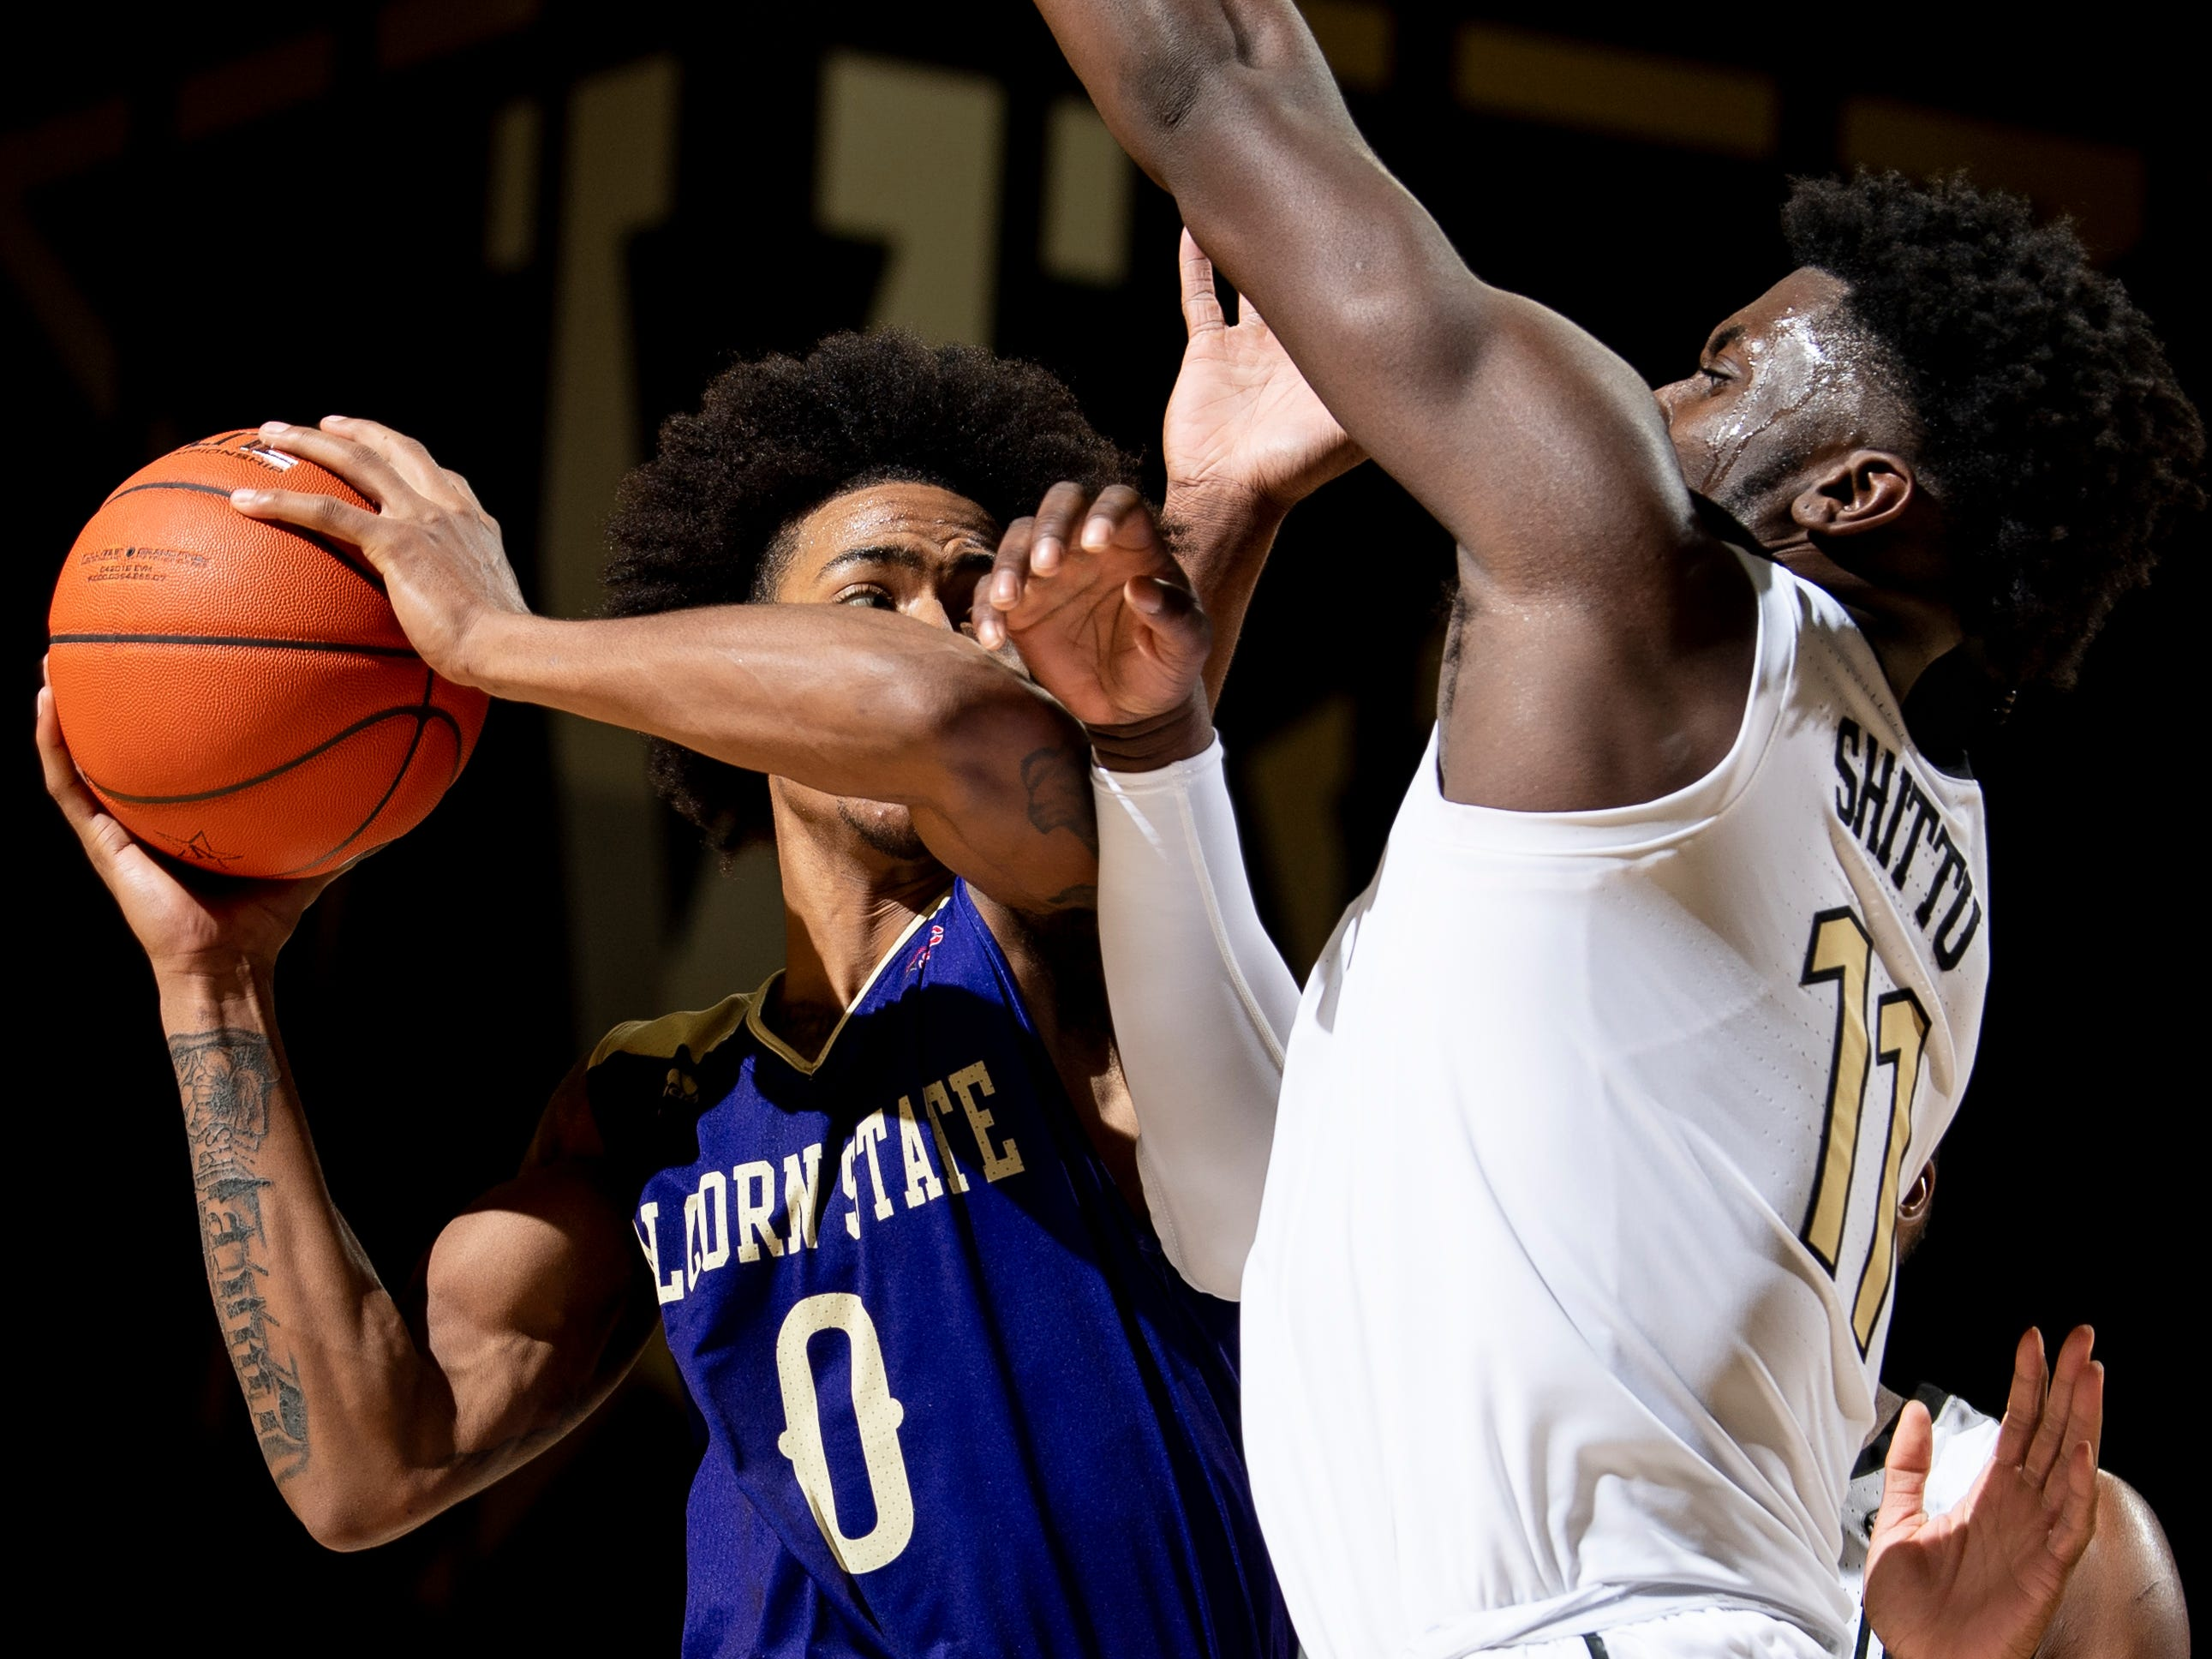 Alcorn State guard Troymain Crosby (0) shoots over Vanderbilt forward Simisola Shittu (11) during the second half at Memorial Gym in Nashville, Tenn., Friday, Nov. 16, 2018.